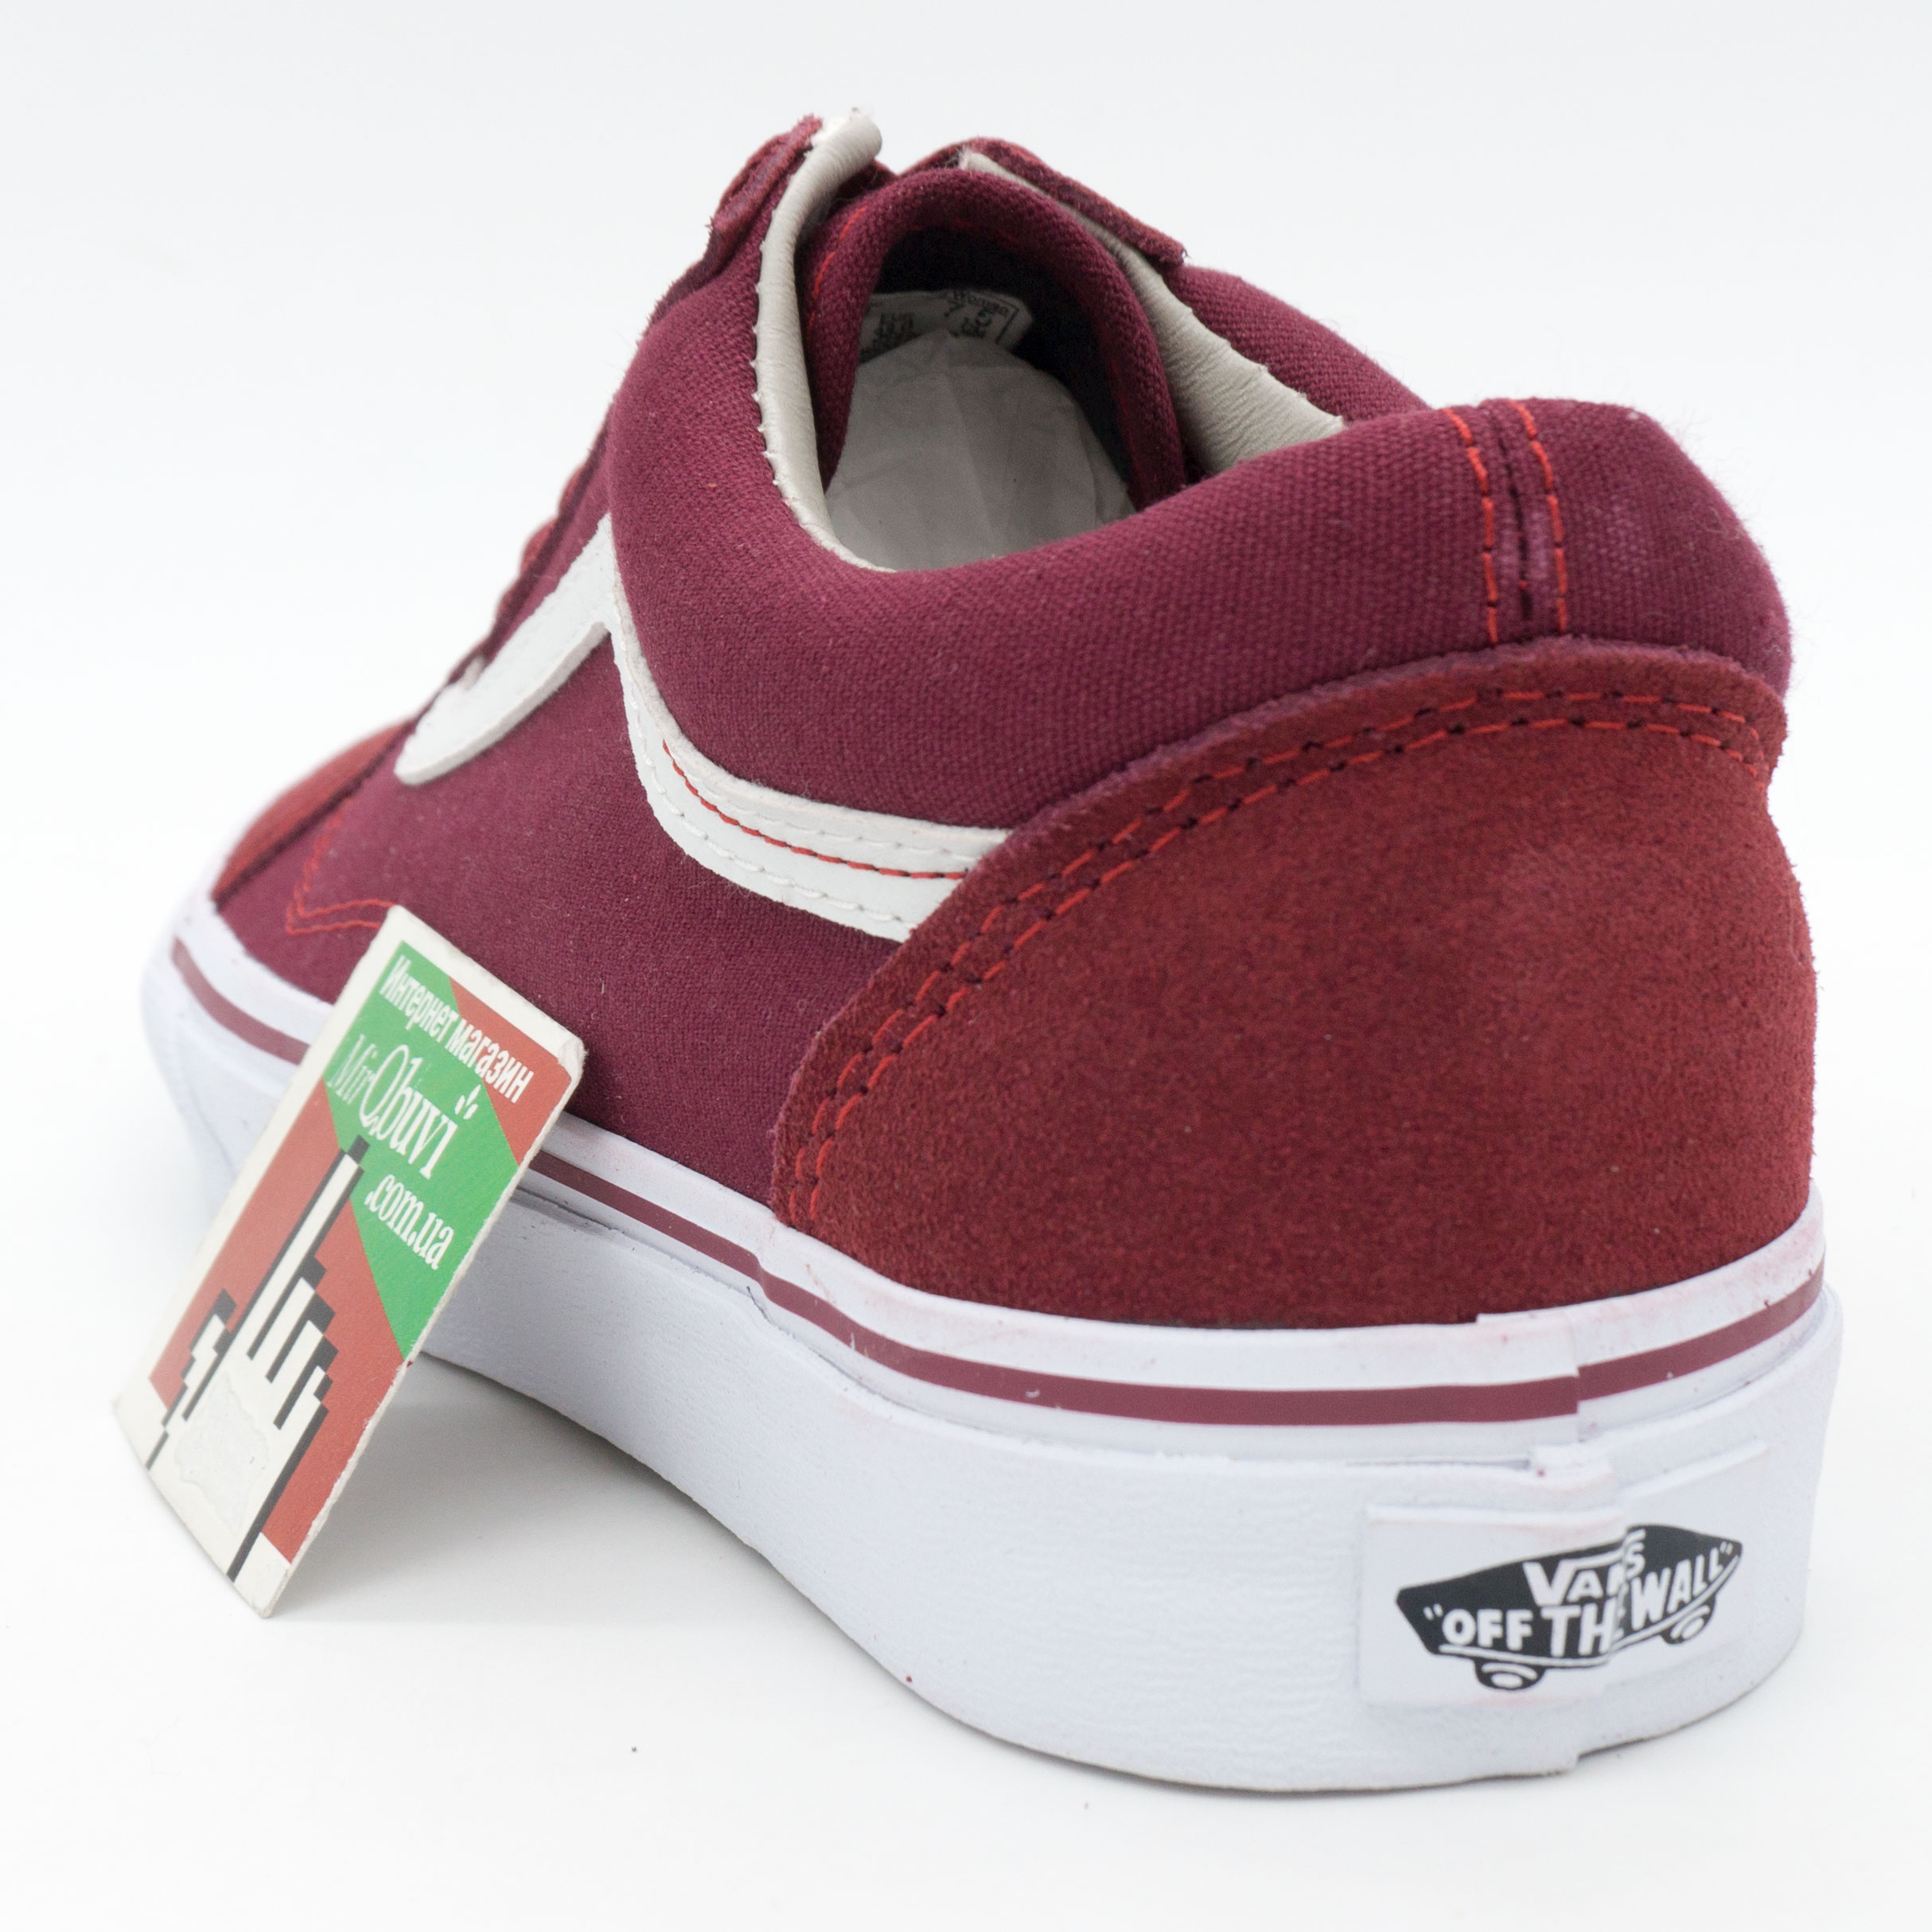 ... фото back Vans old skool Венс олд скул бордовые 2662cfcdc3775